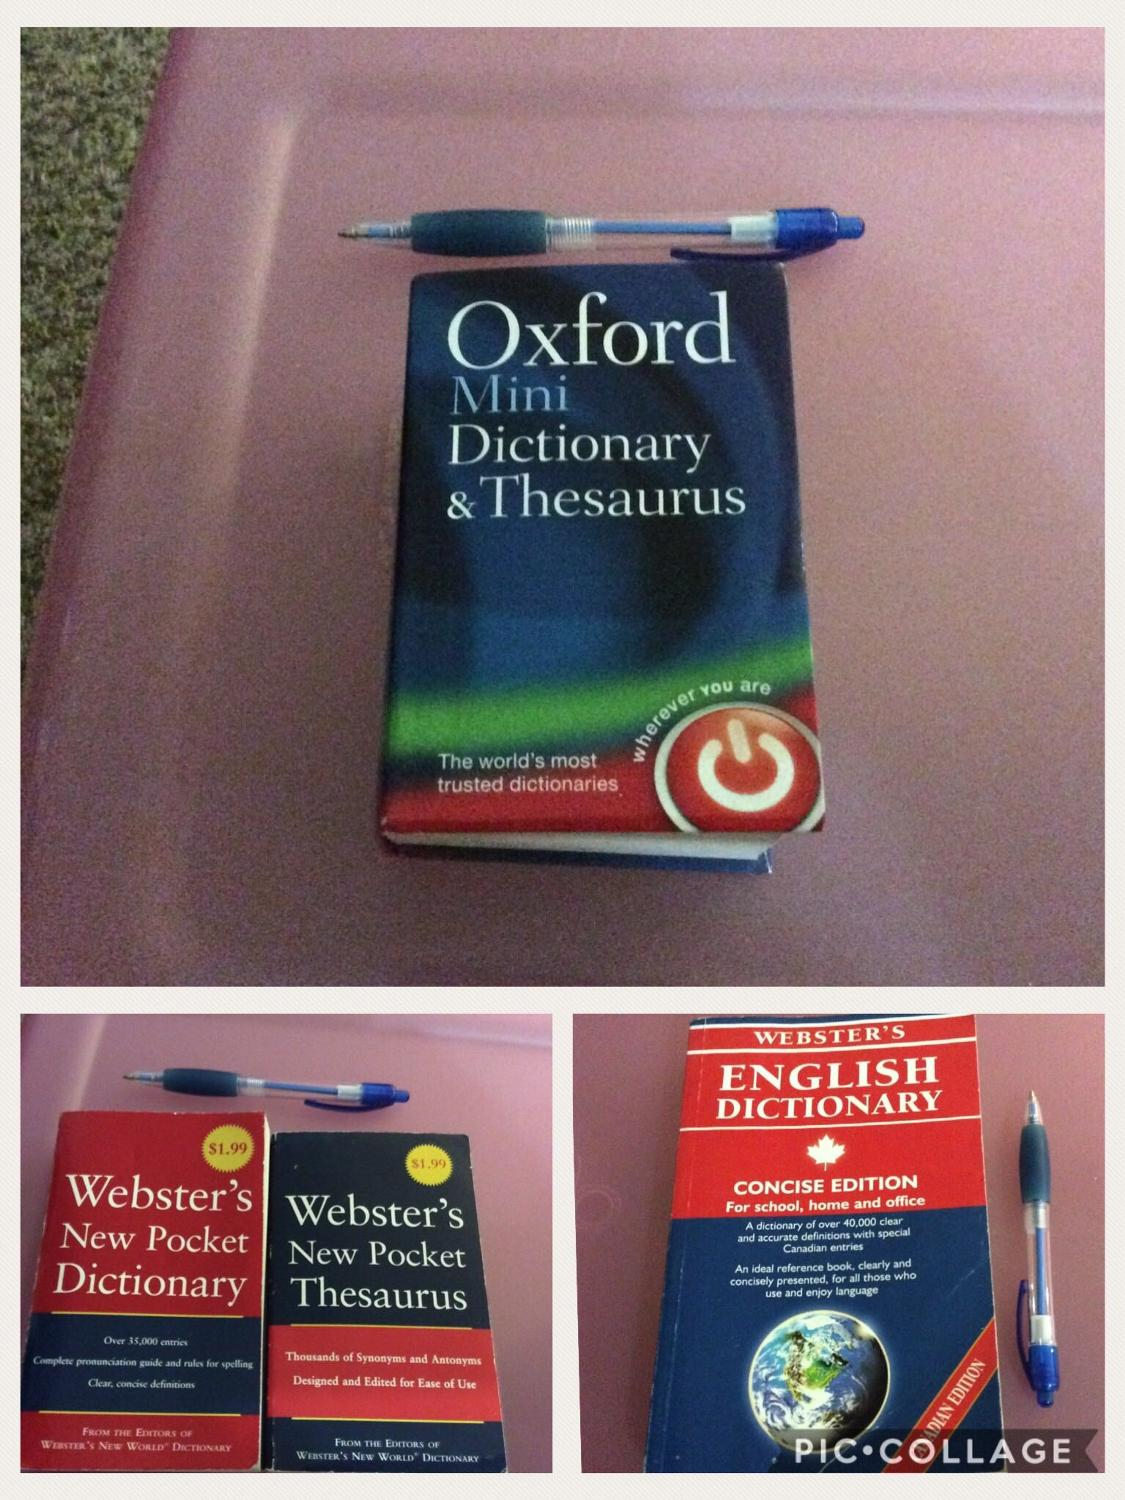 Find more Dictionary's & Thesaurus - Mini , Pocket & Concise